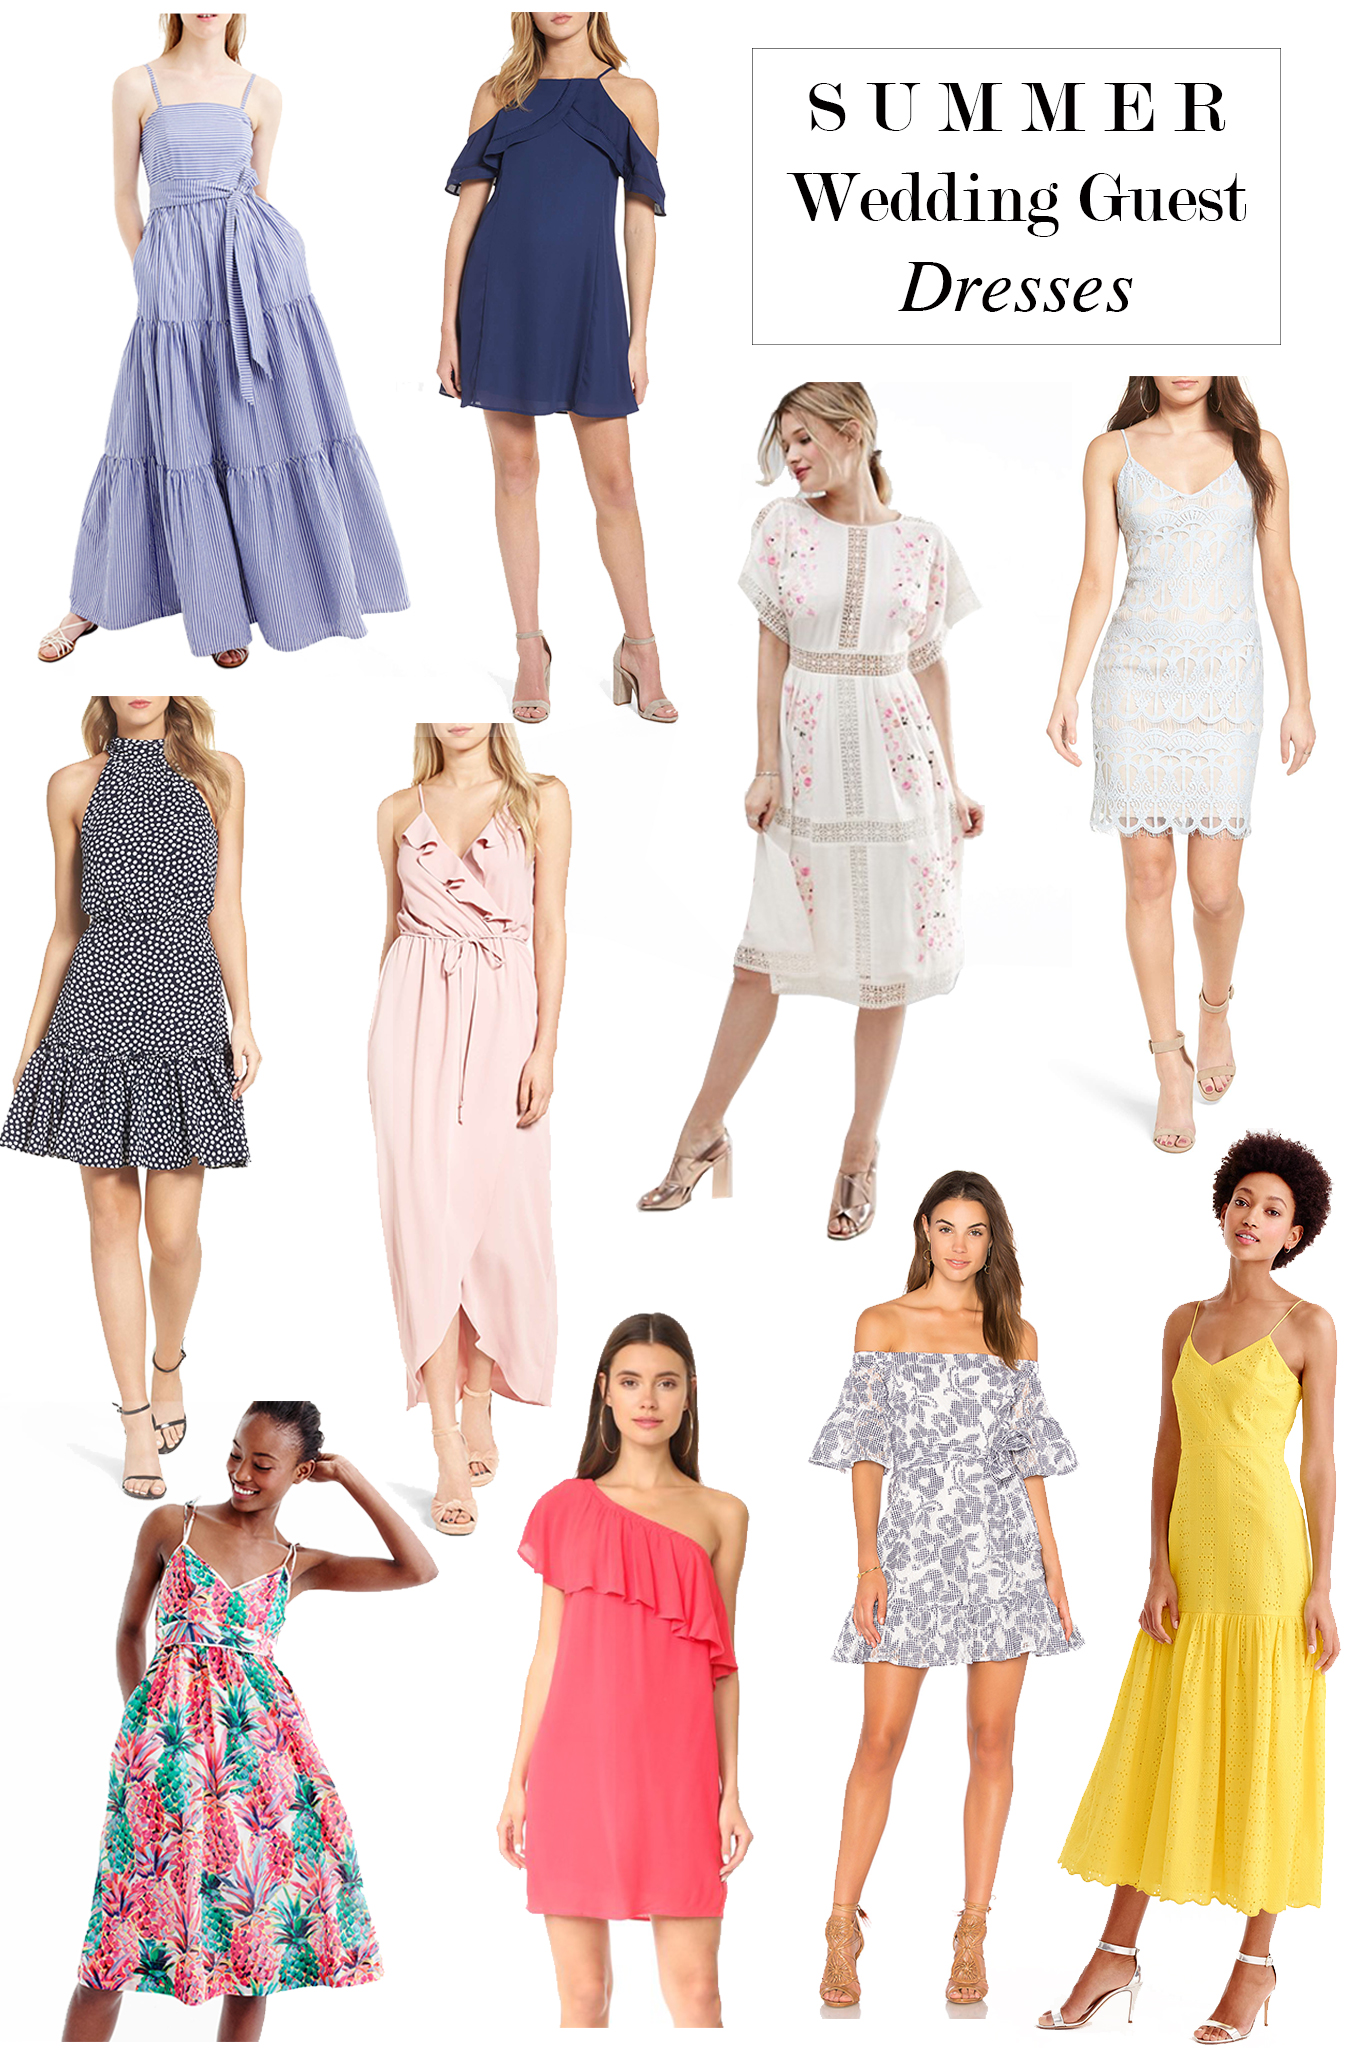 Hi Guys Sorry For Missing Friday's Post Last Week But Things Were A Bit Hectic With One Of My Best Friends Getting Married Being In Her Wedding Was: Wedding Day Guest Dresses At Reisefeber.org